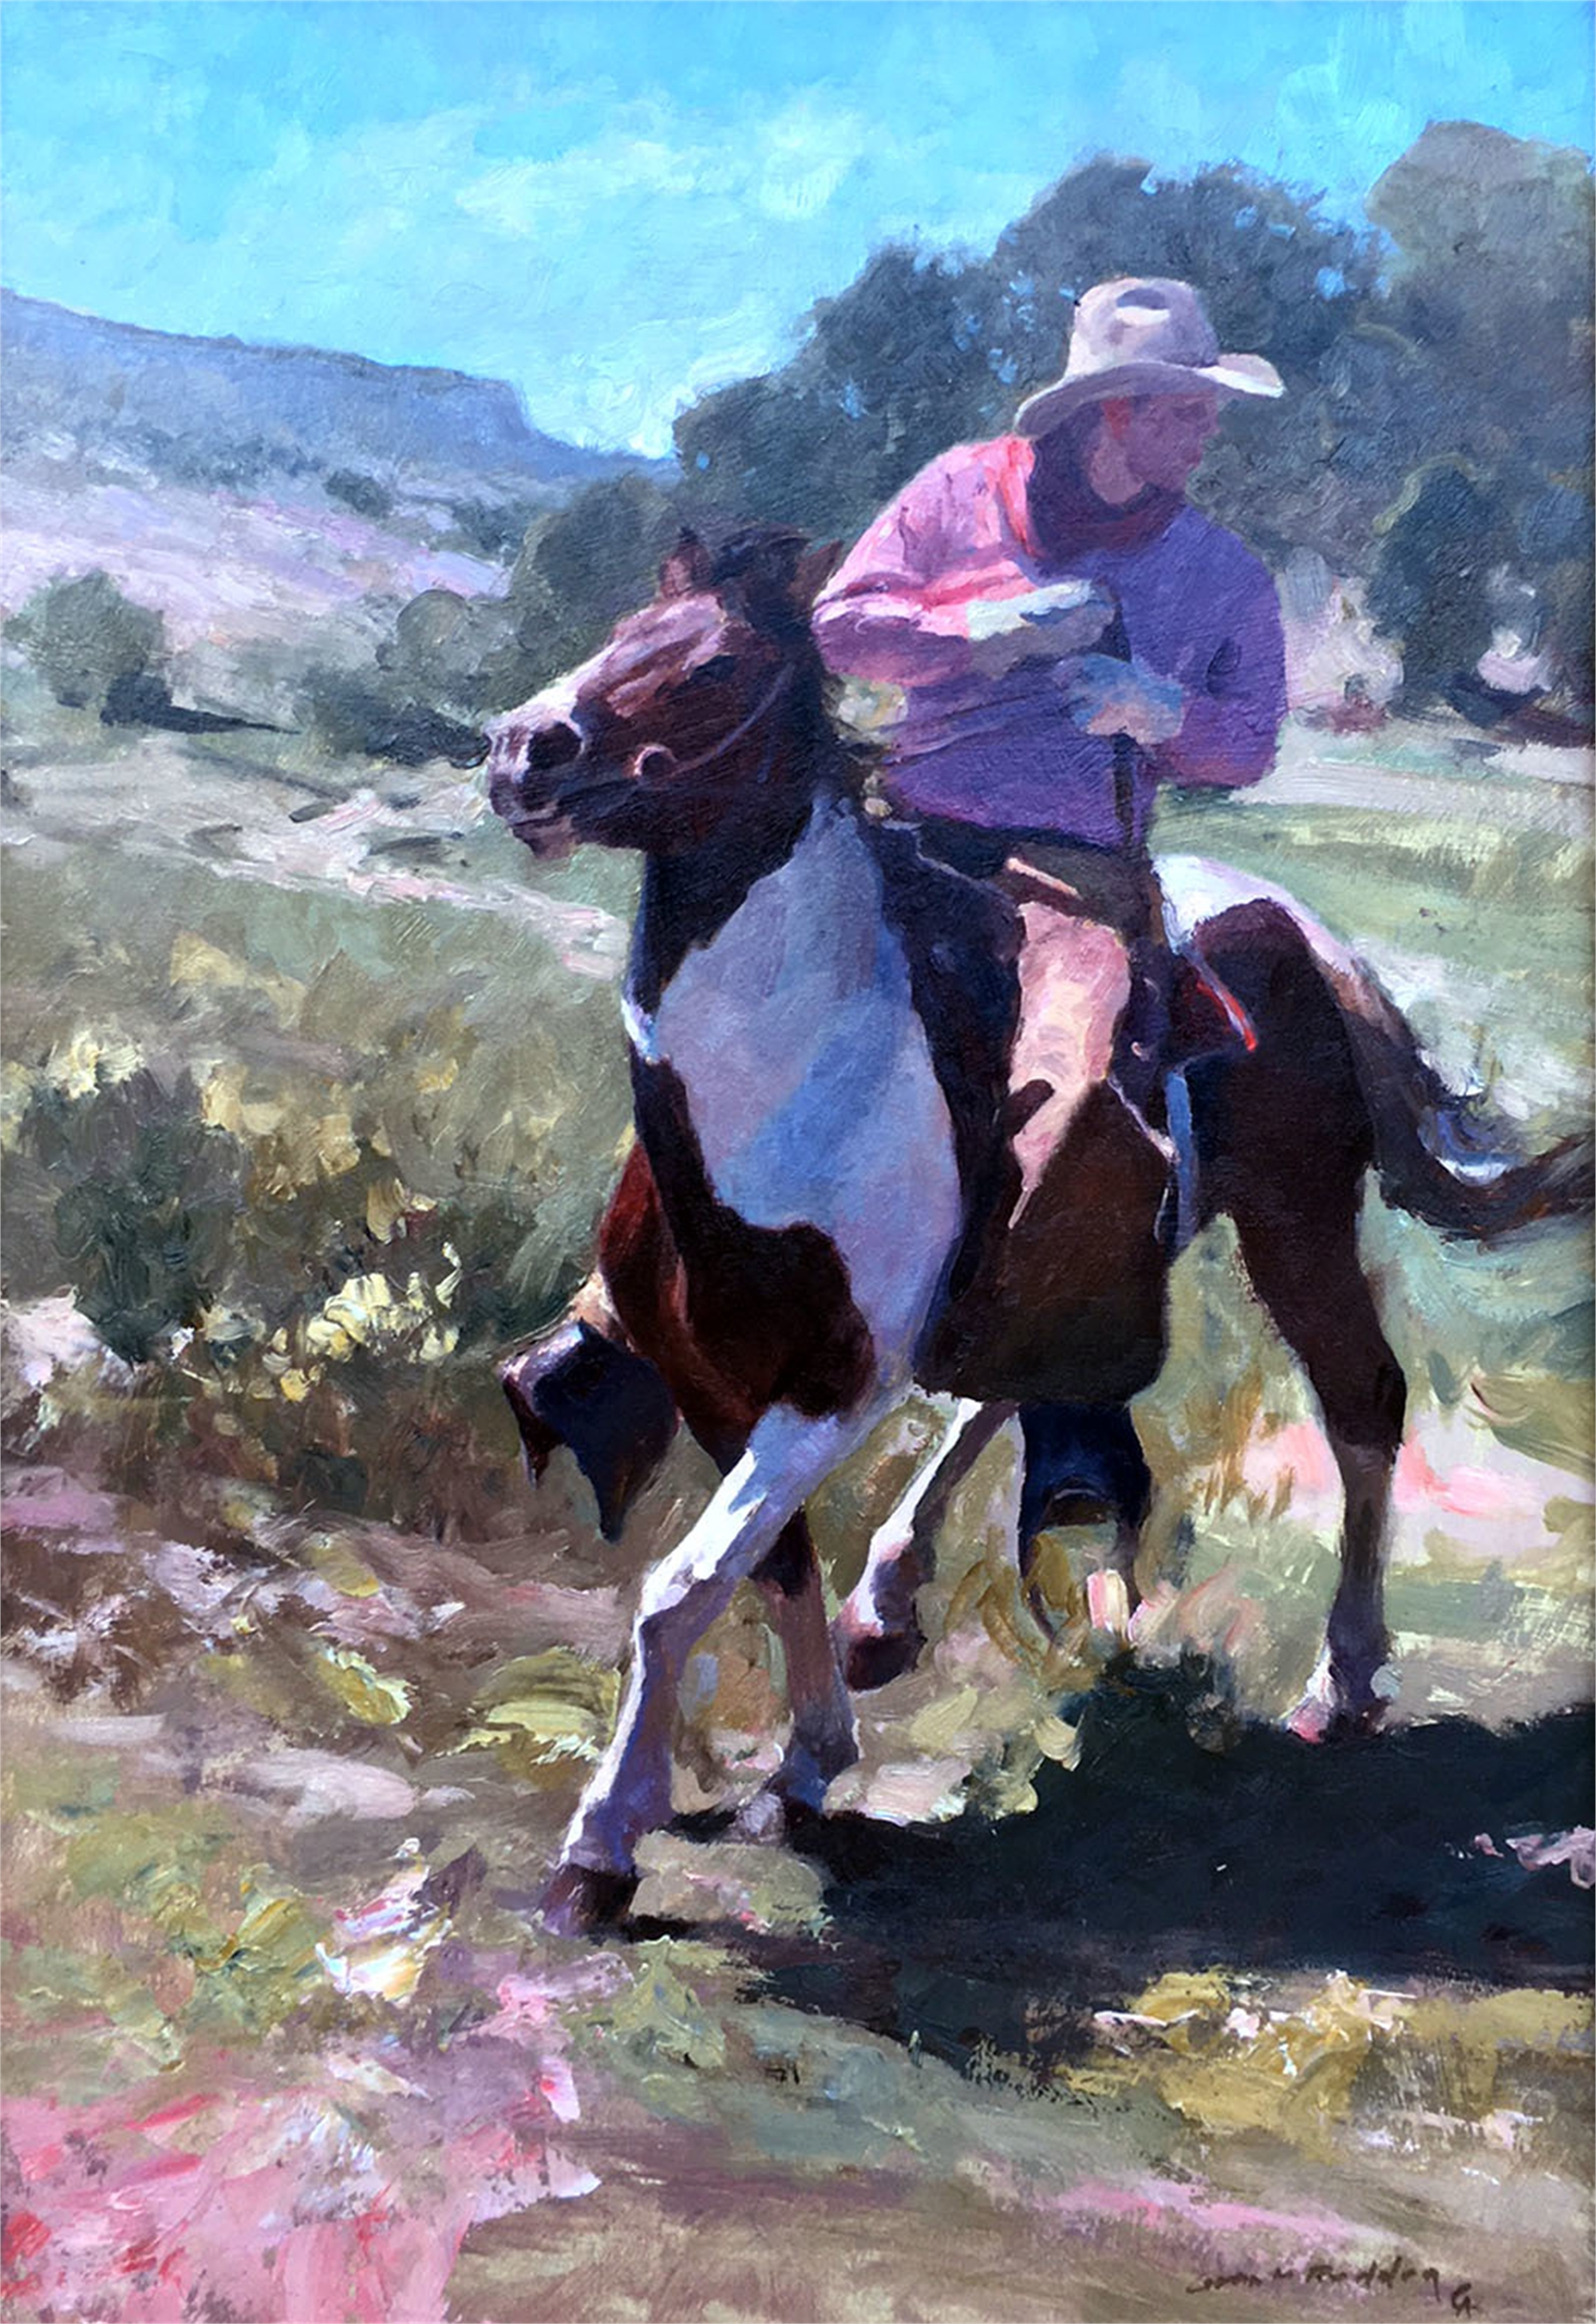 The Paint Horse by Grant Redden